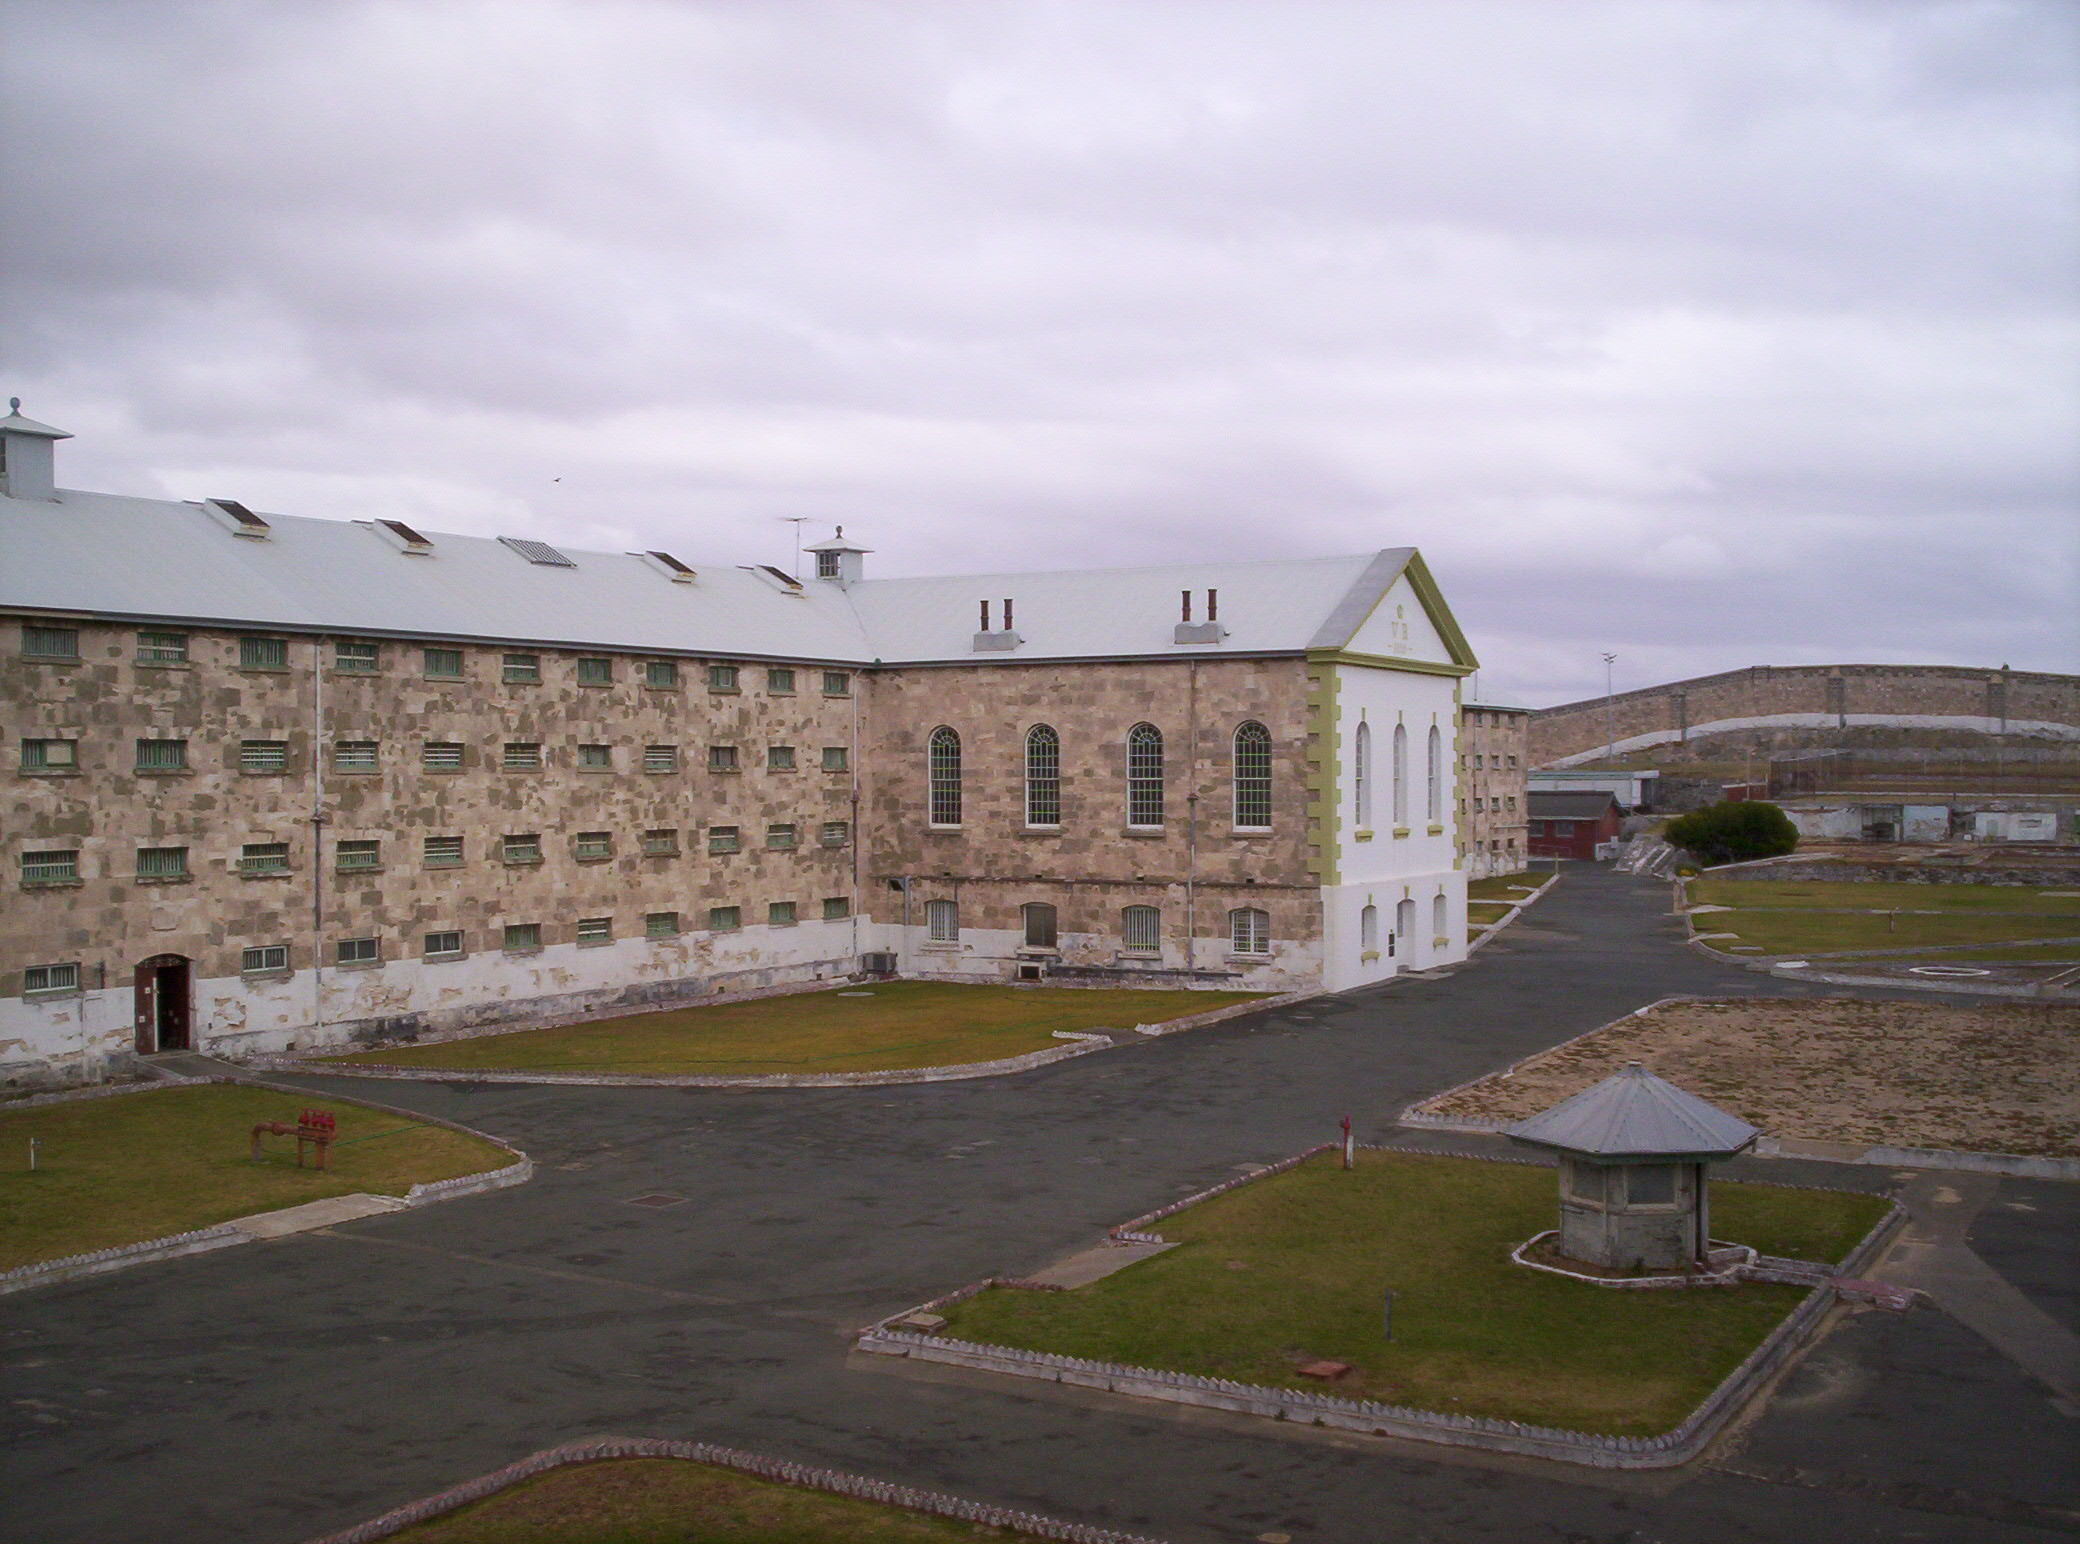 Fremantle_prison_main_cellblock.JPG